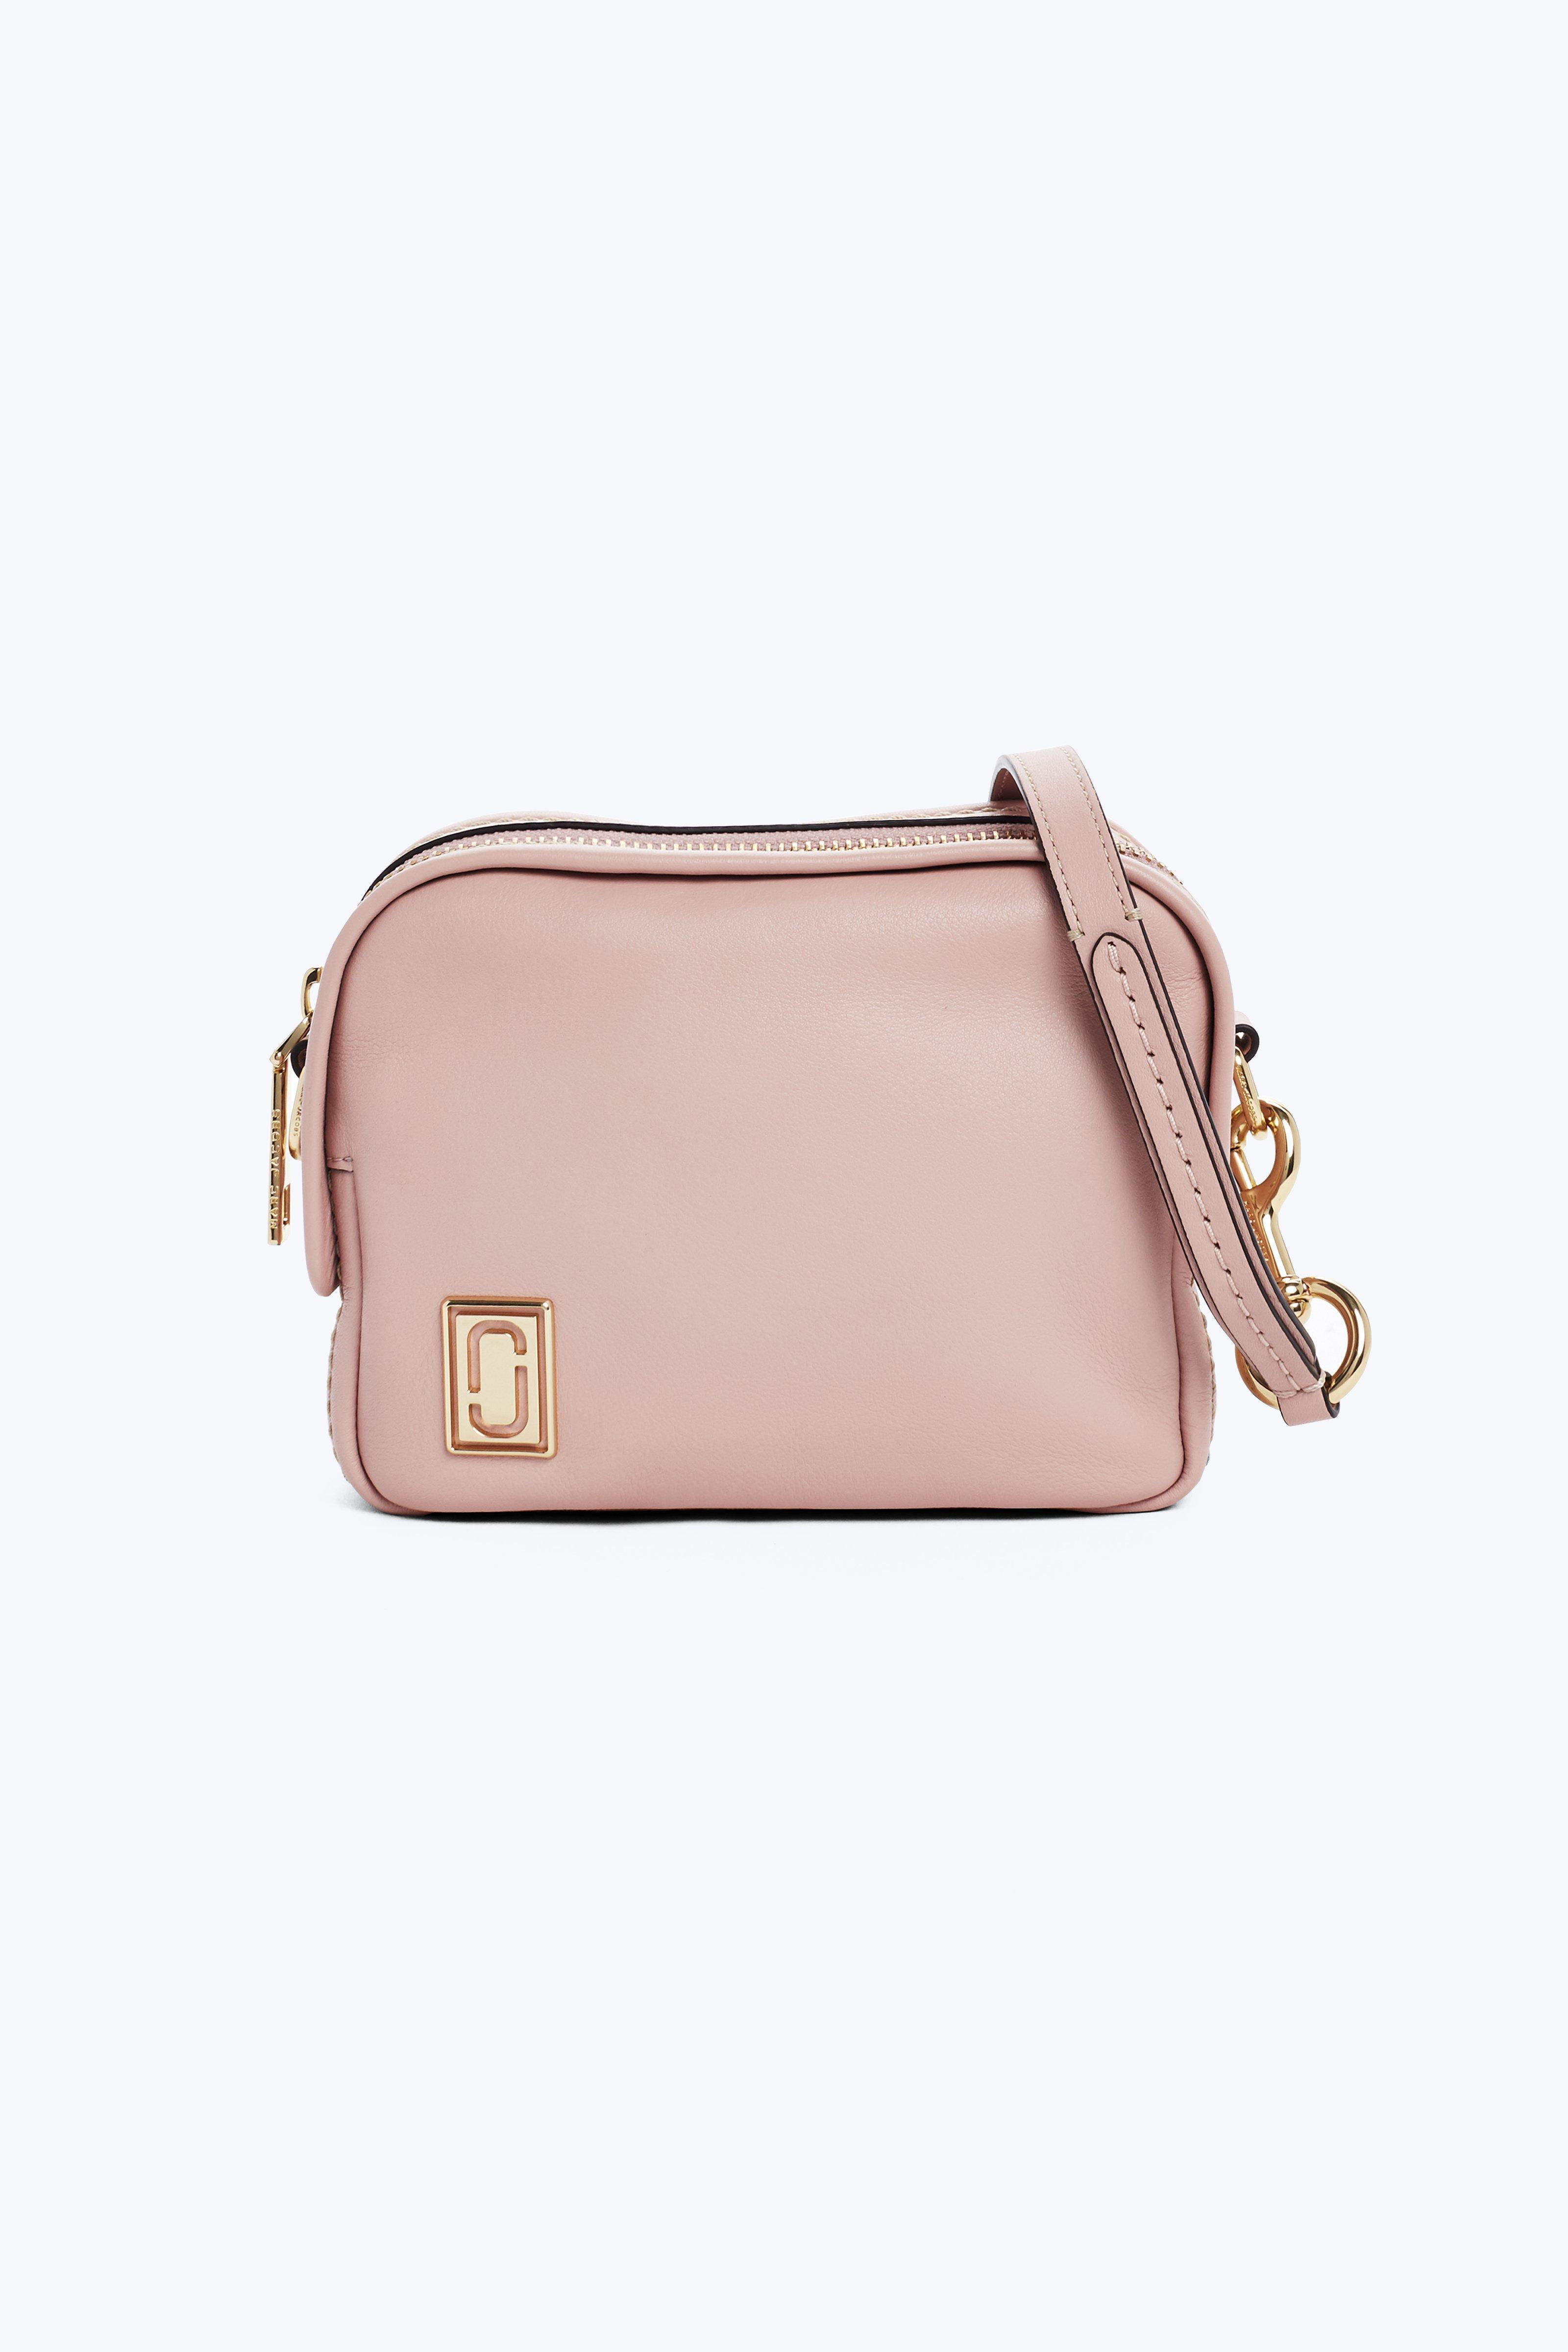 cc0e1bbcc52b Lyst - Marc Jacobs The Mini Squeeze Bag in Pink